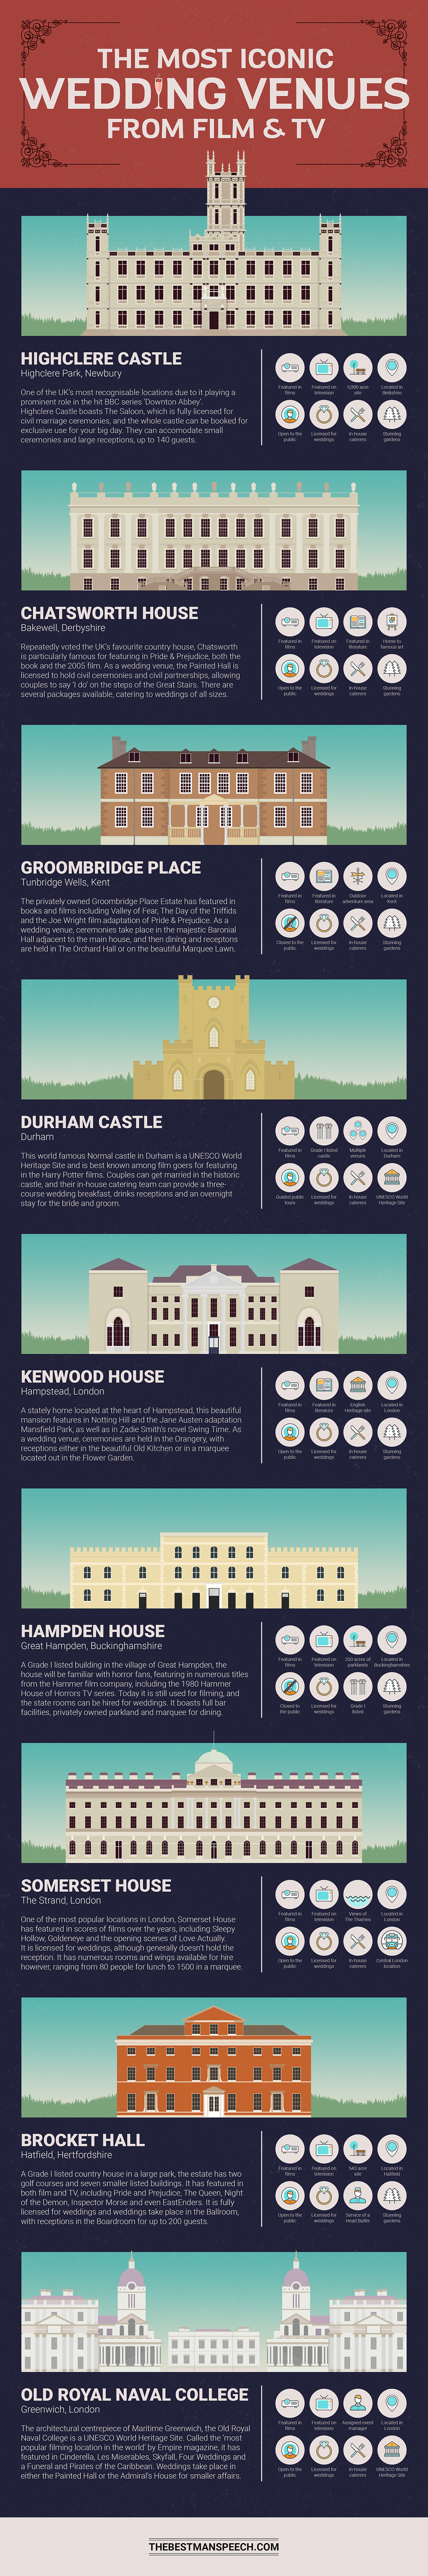 The Most Iconic Wedding Venues from Film and TV.png